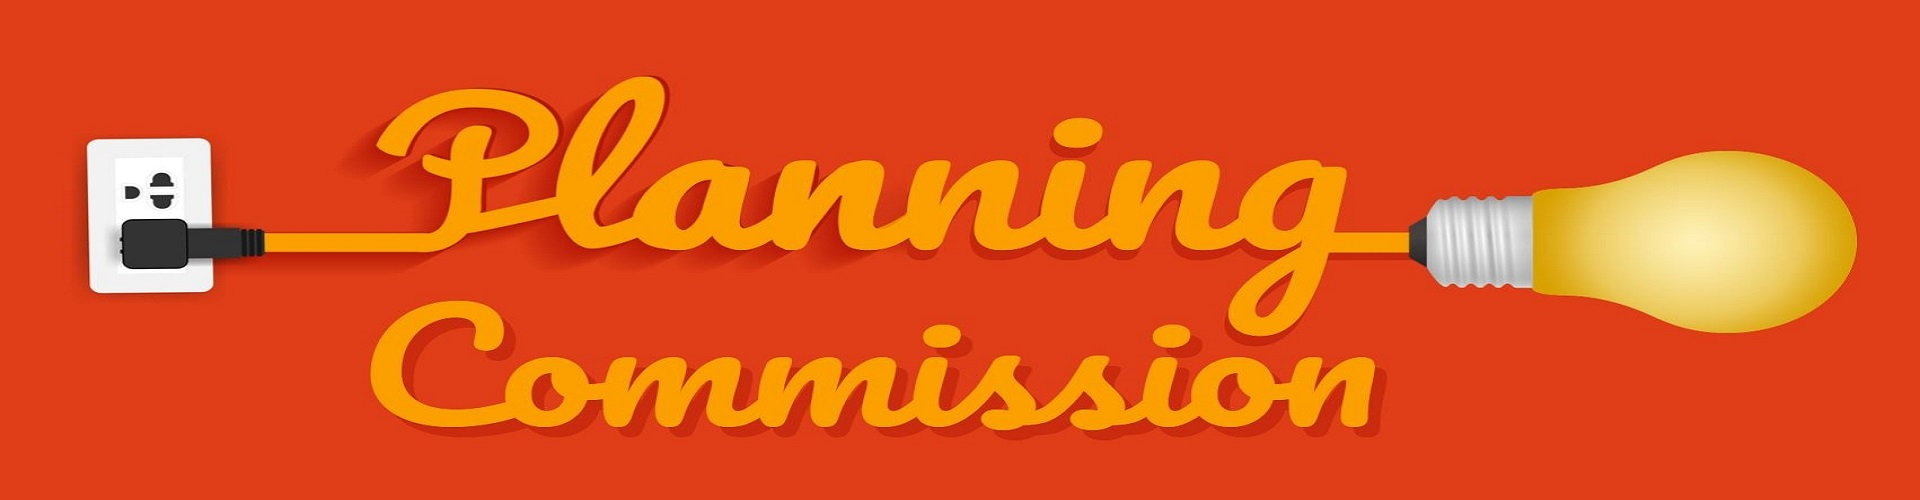 planning commission banner - Copy